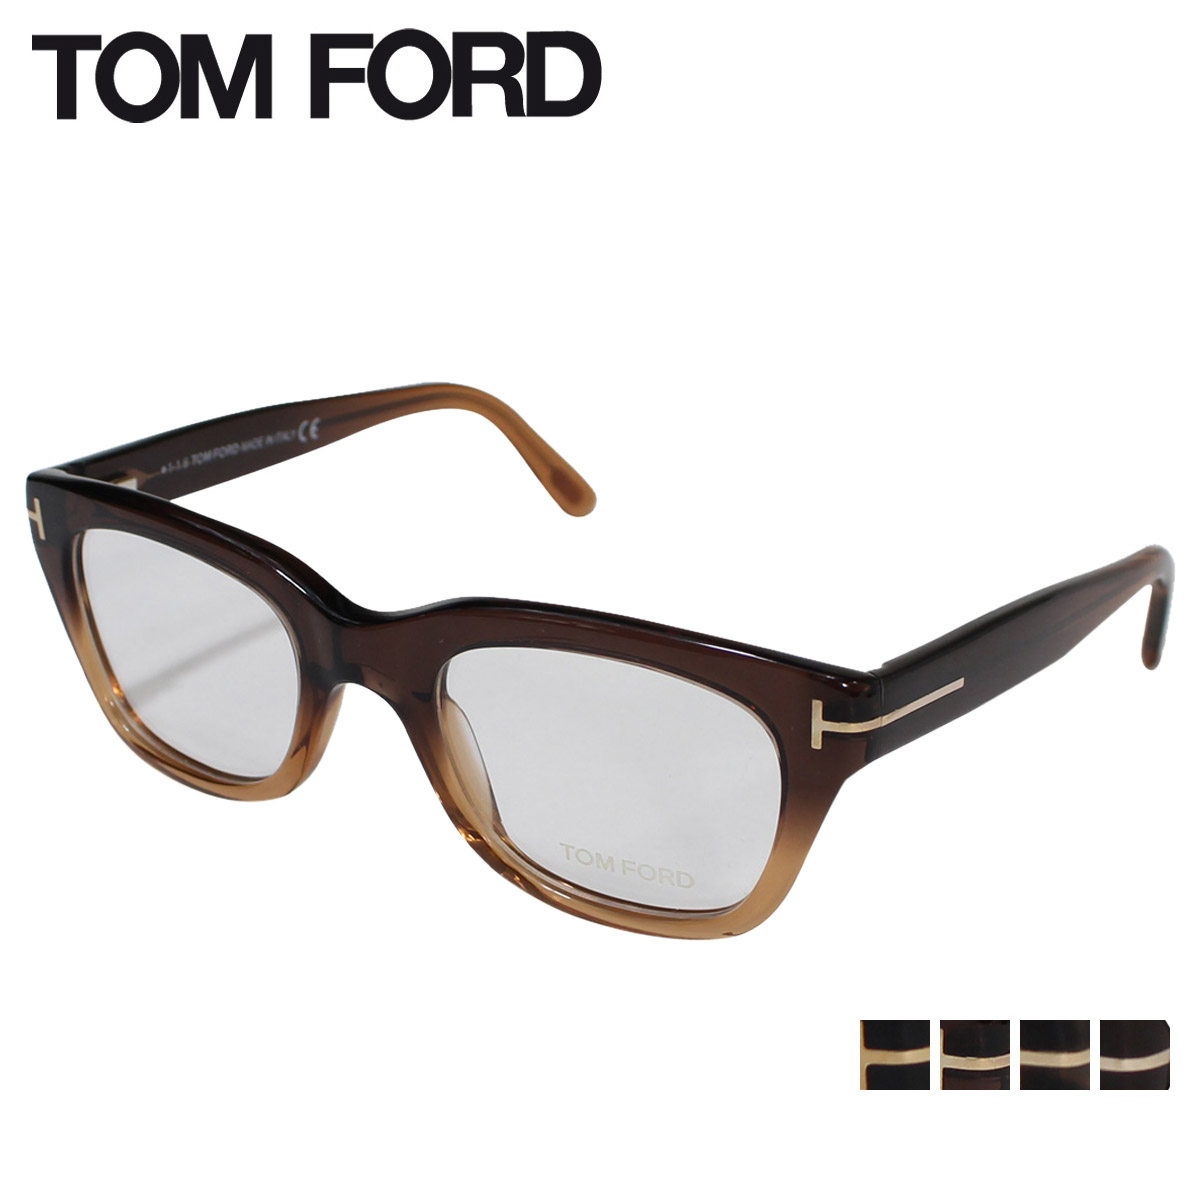 2e724314035 Tom Ford Spectacle Frames South Africa - Best Photos Of Frame ...